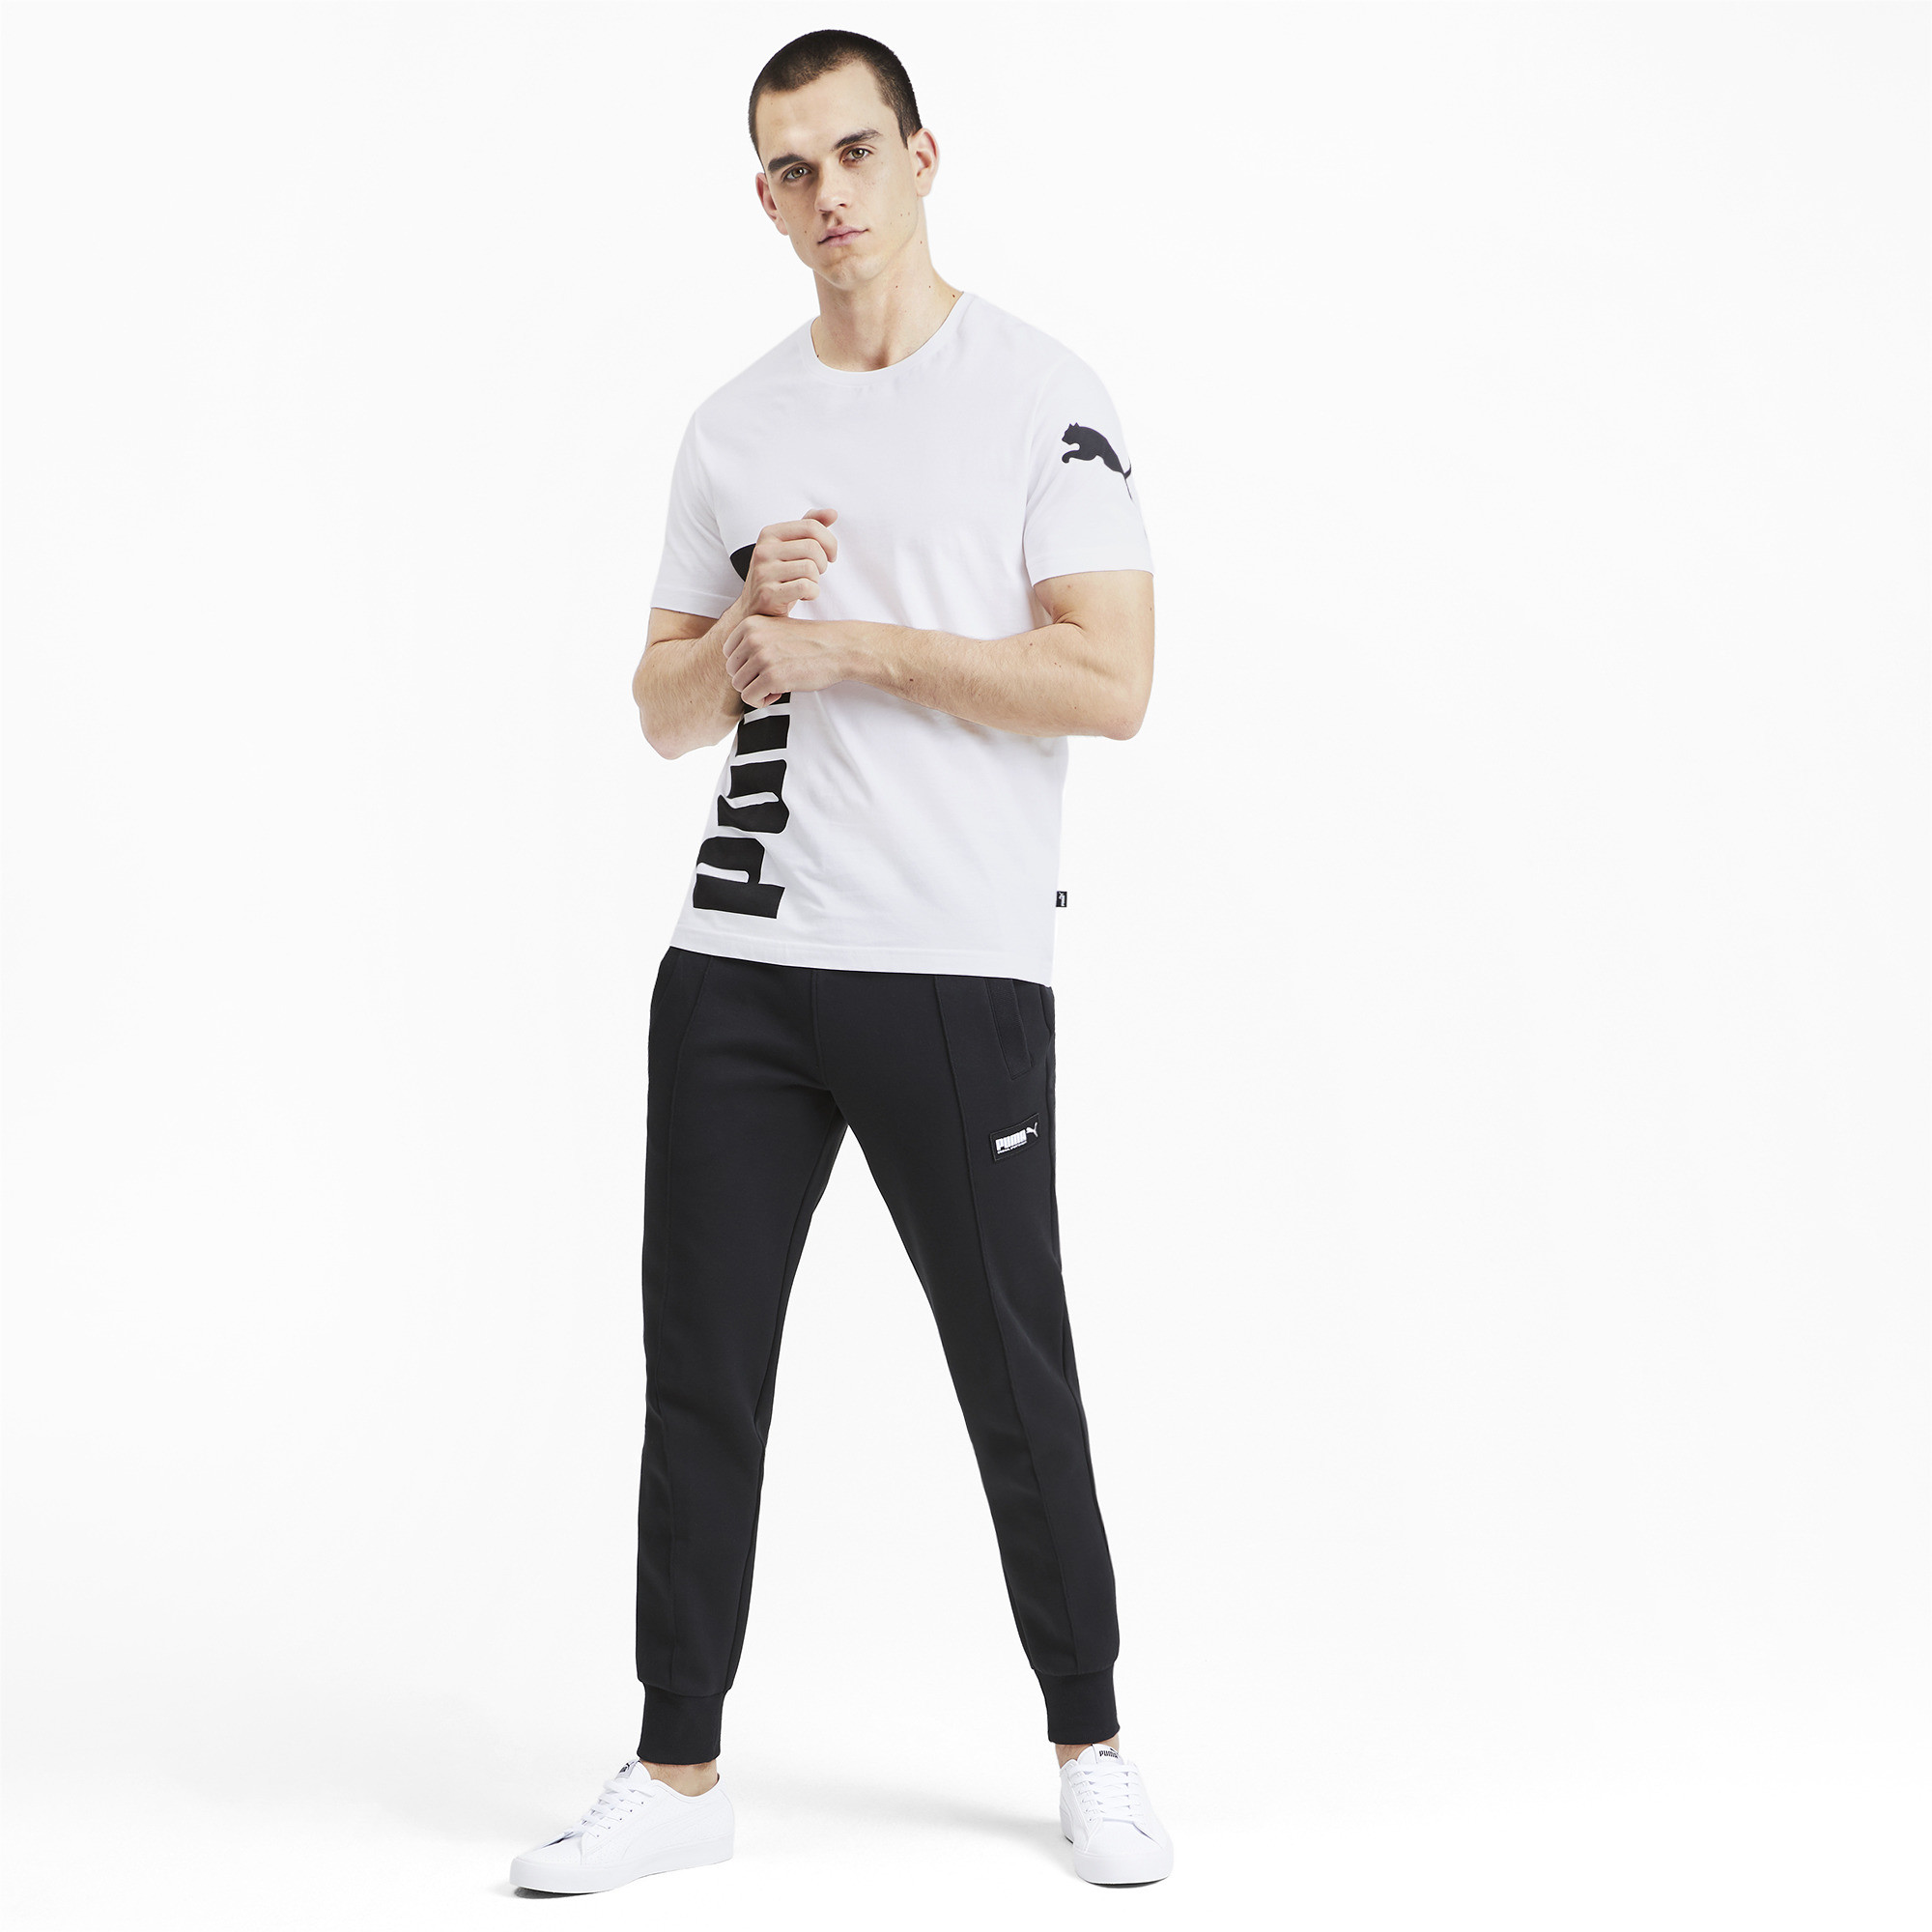 PUMA-Big-Logo-Men-039-s-Tee-Men-Tee-Basics thumbnail 30